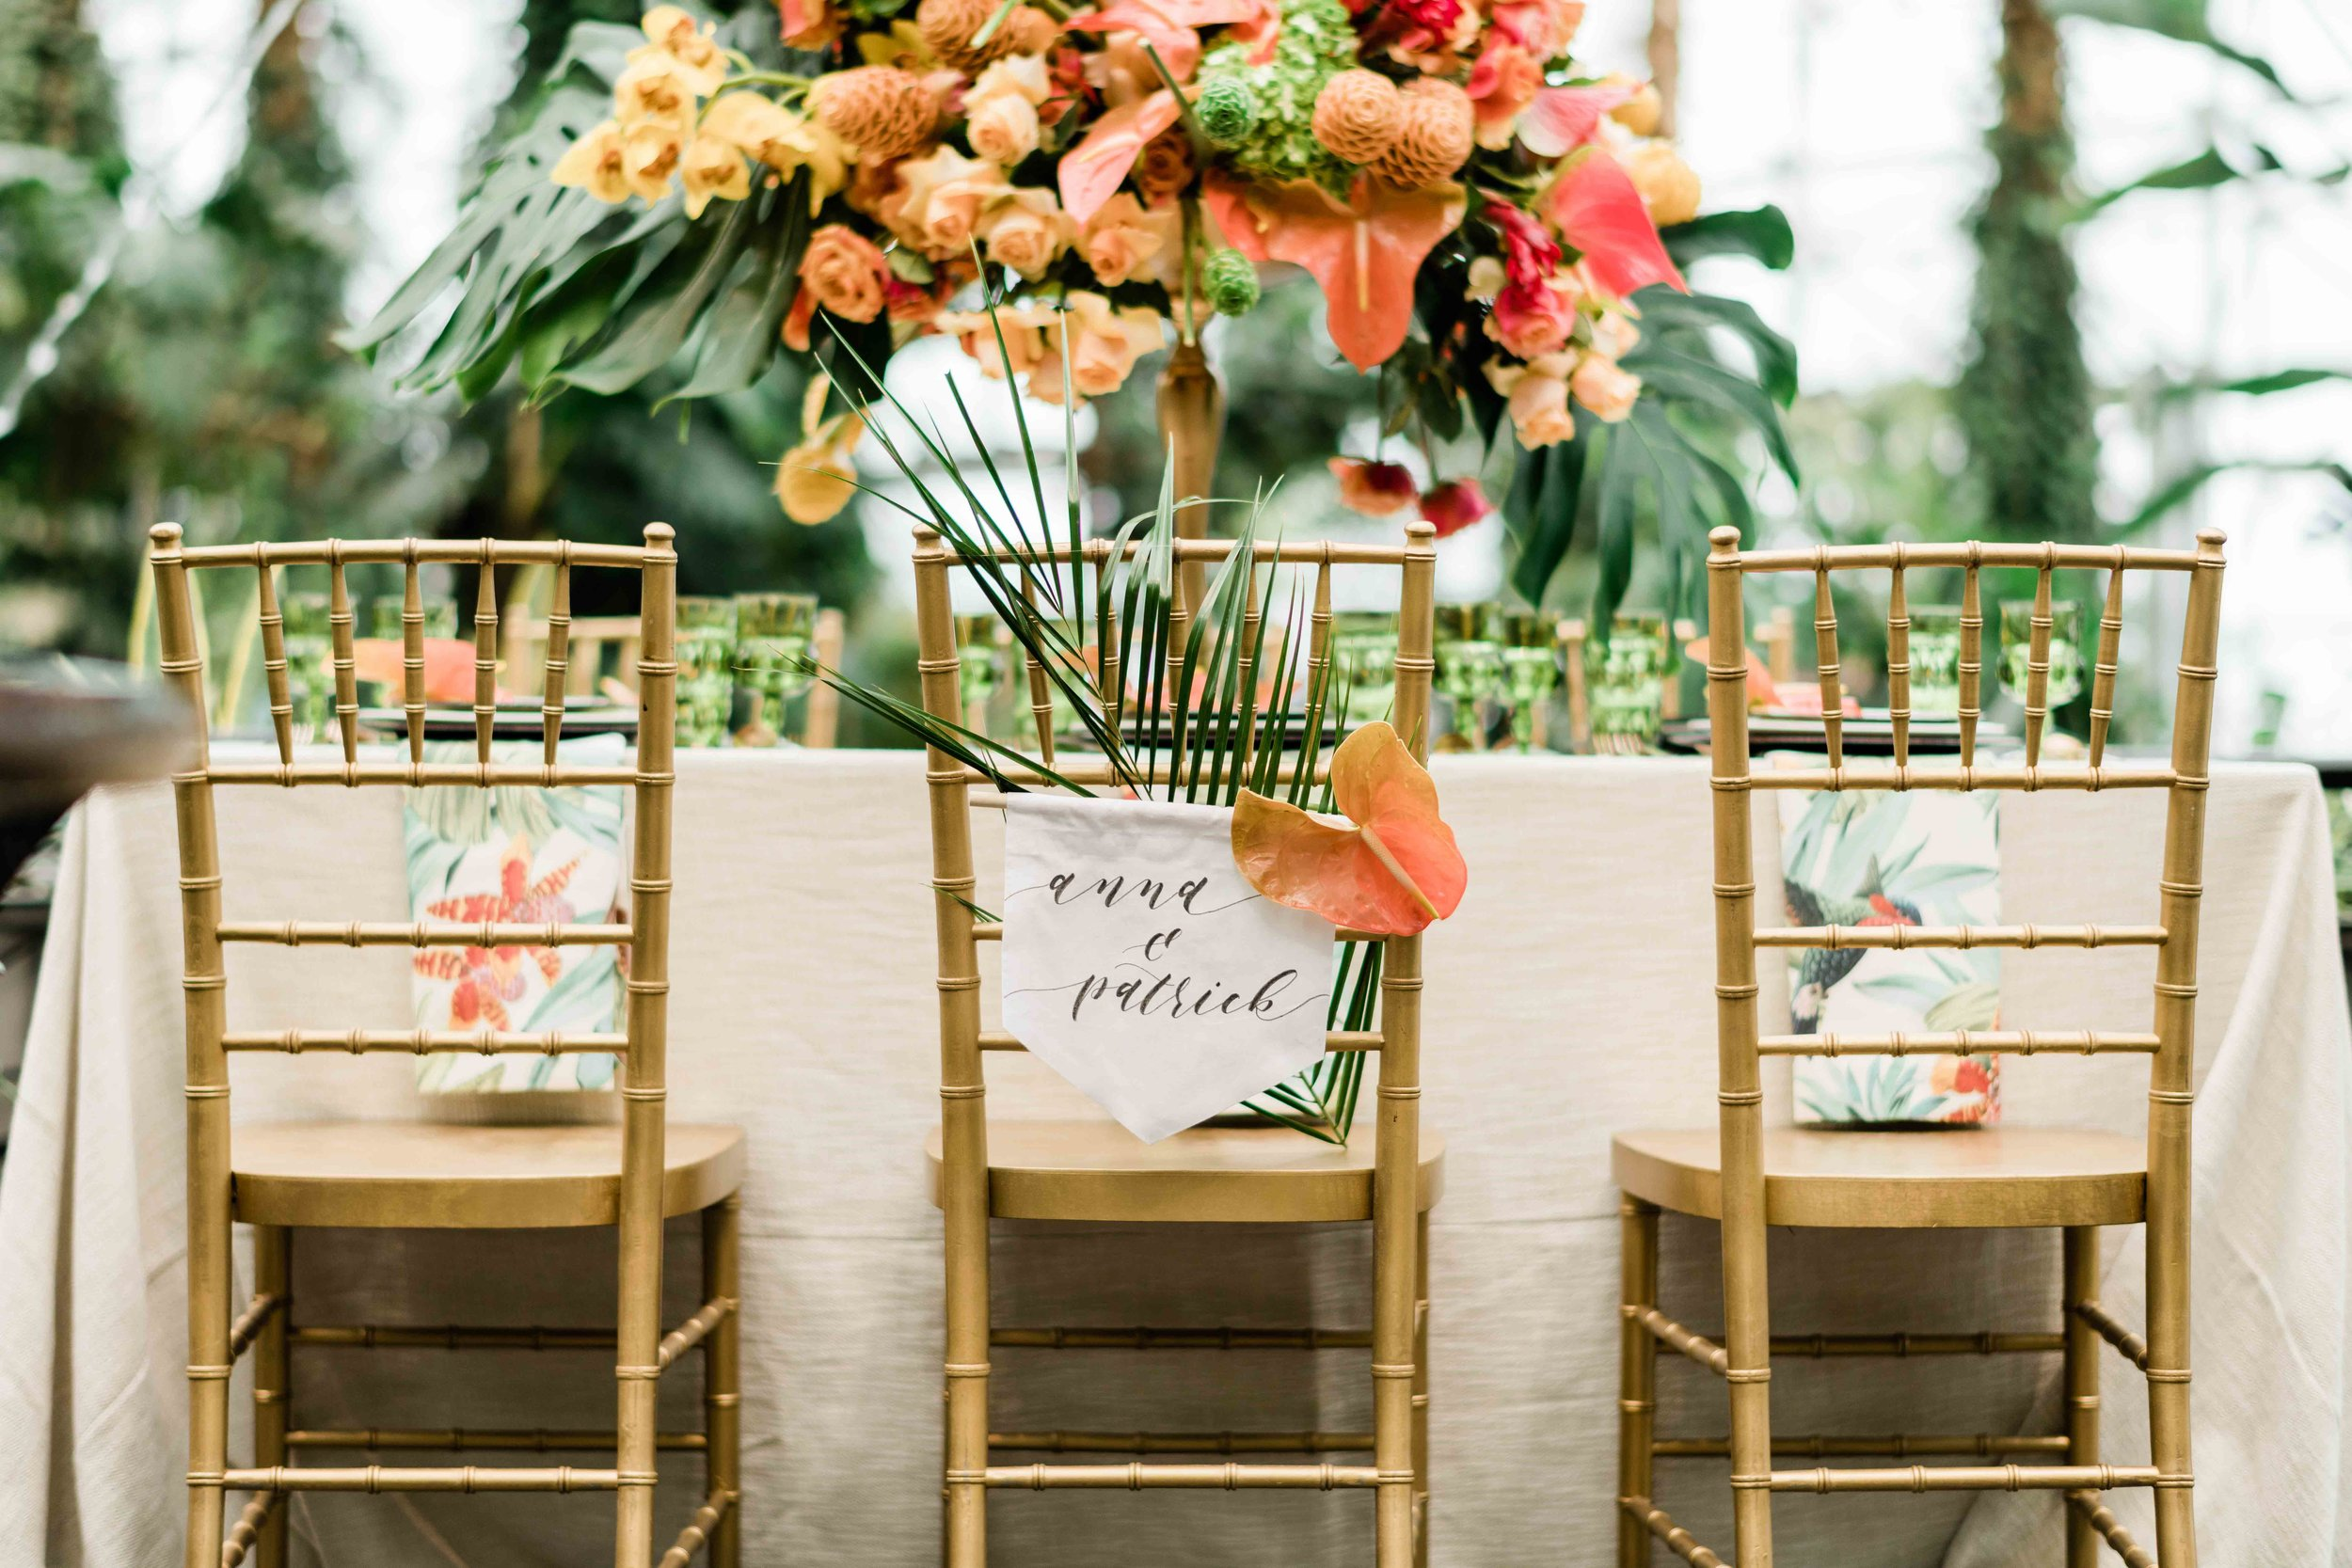 Bride and groom name sign on a chair